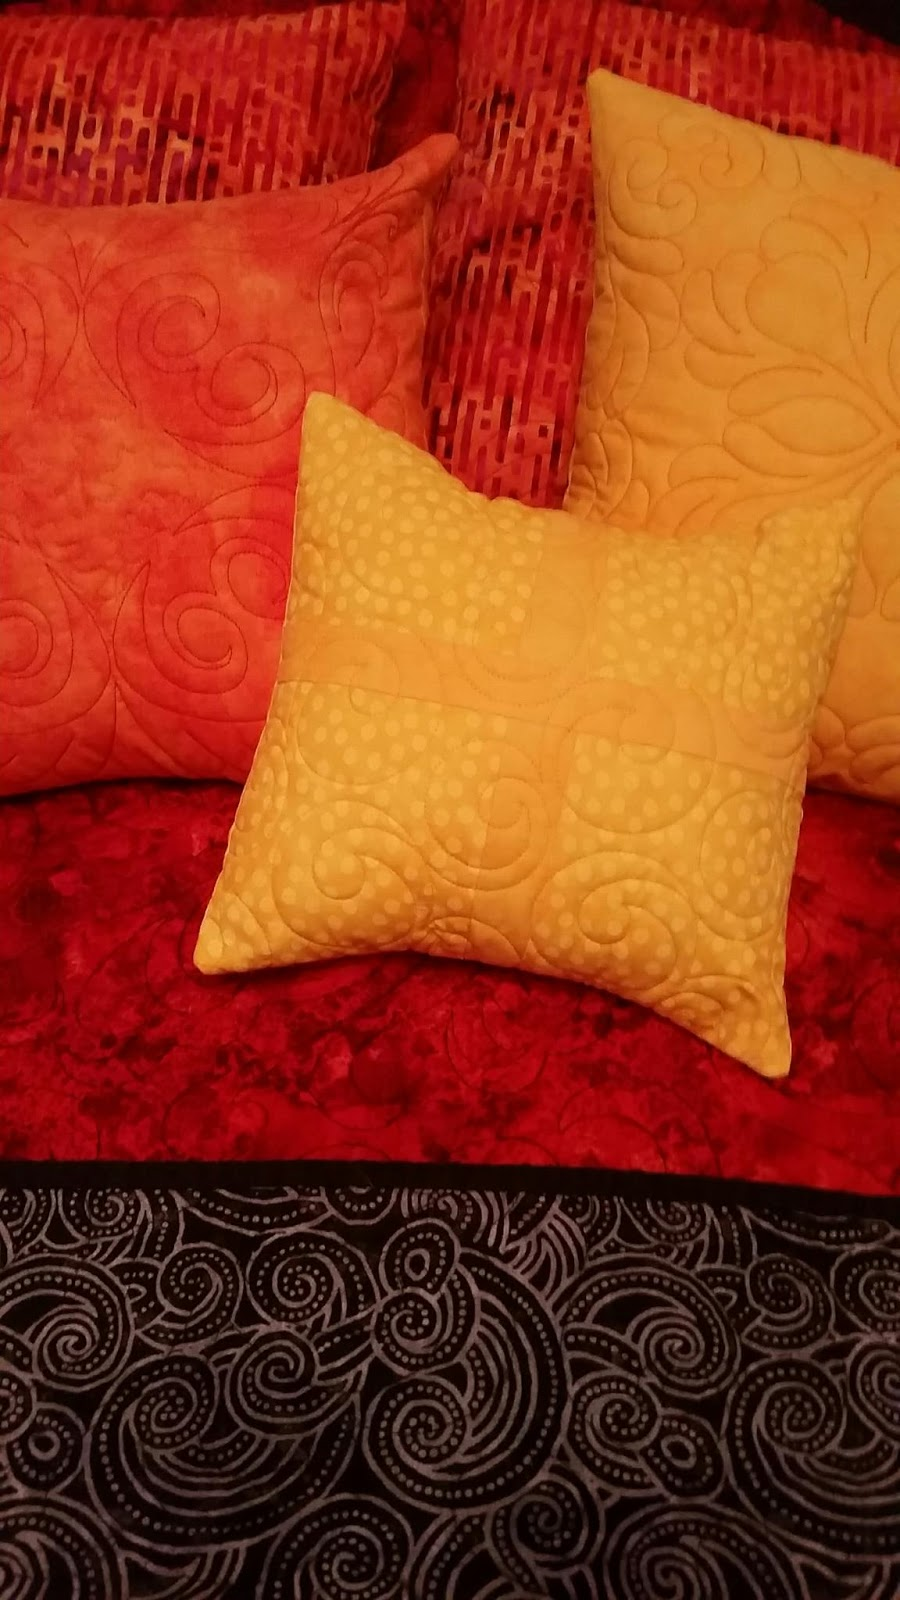 Millie S Quilting Red Quilt And Orange And Yellow Pillows